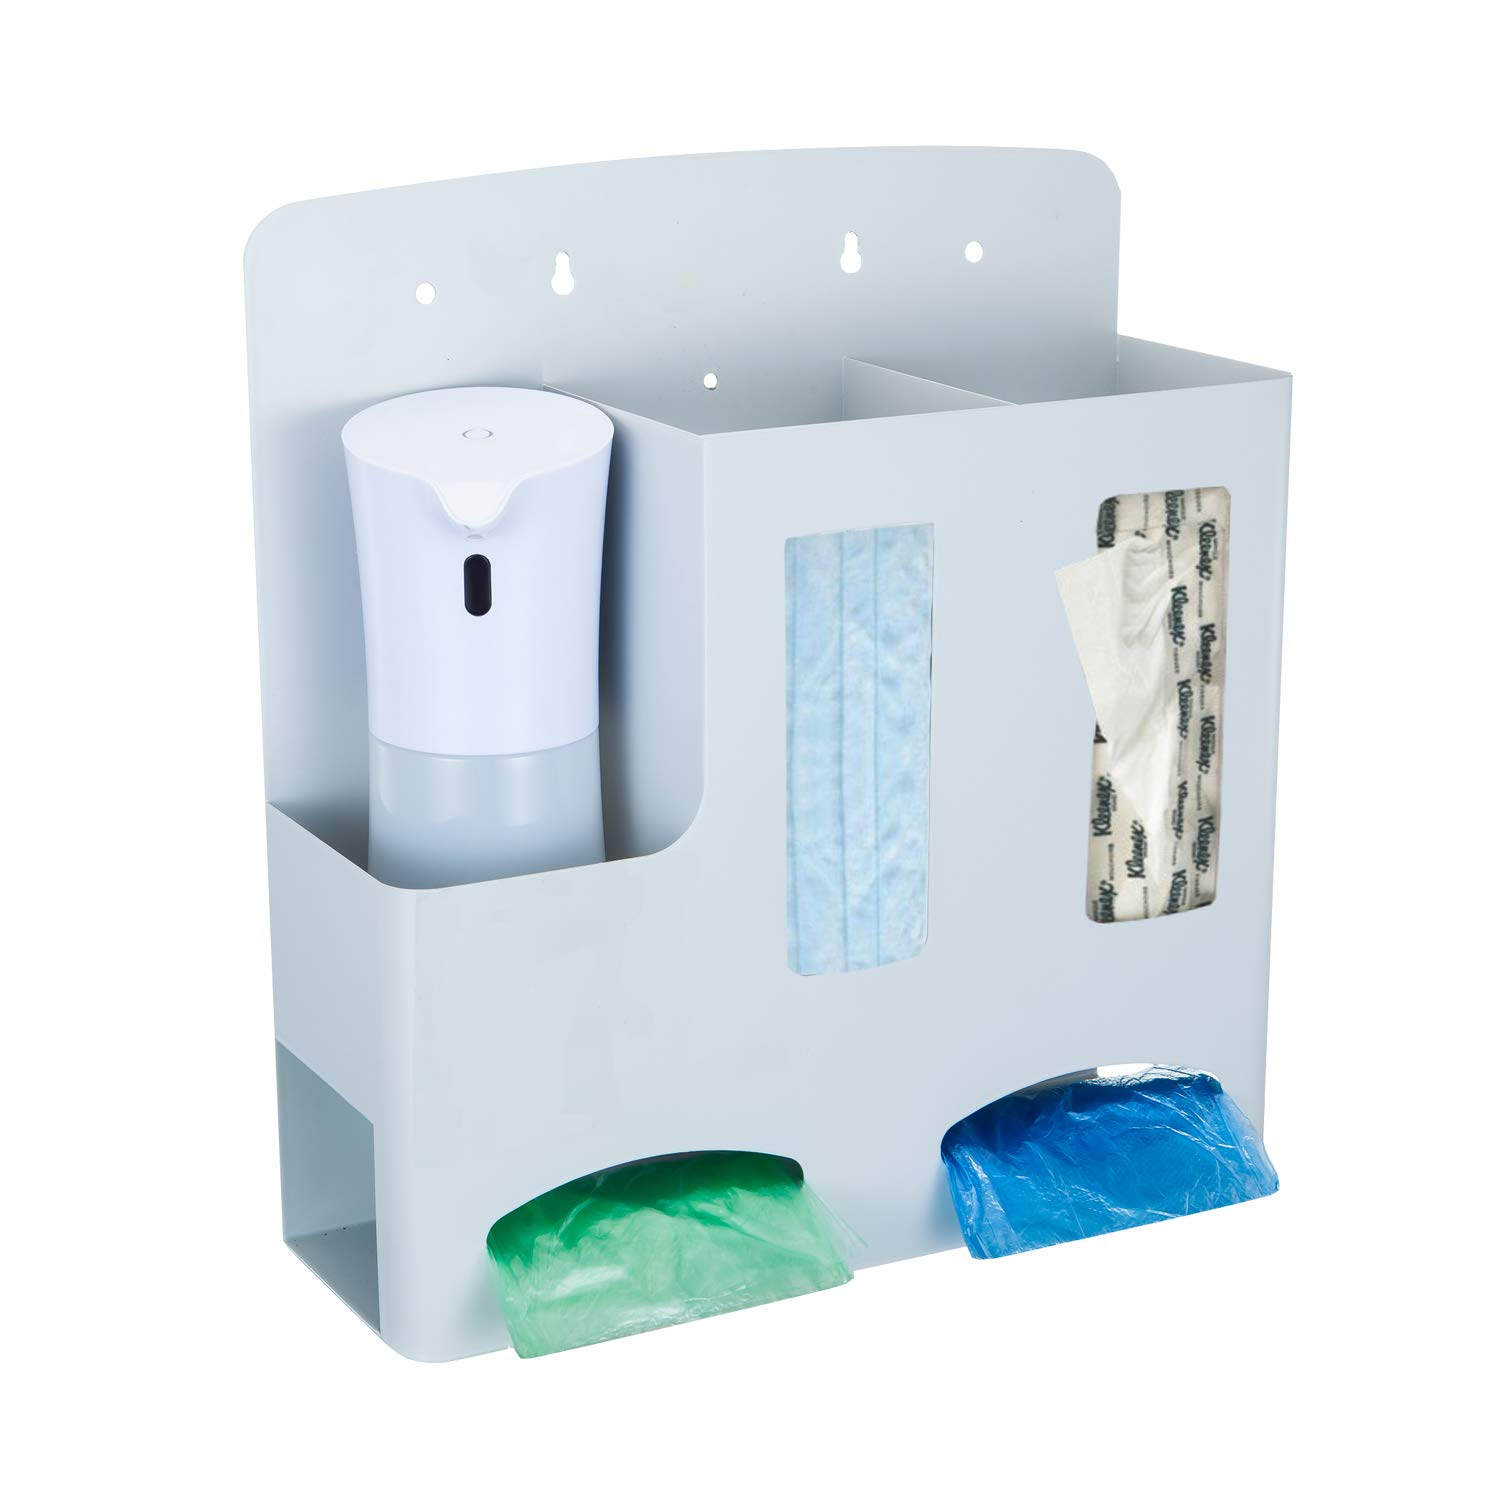 Hygiene-Use Isolation Storage Box with 400ML Automatic Hand Sanitizer Dispenser - Accessories Holder Cabinet for Hospital, Office, Hotel, White,Wall-Mounted, 5 Compartments